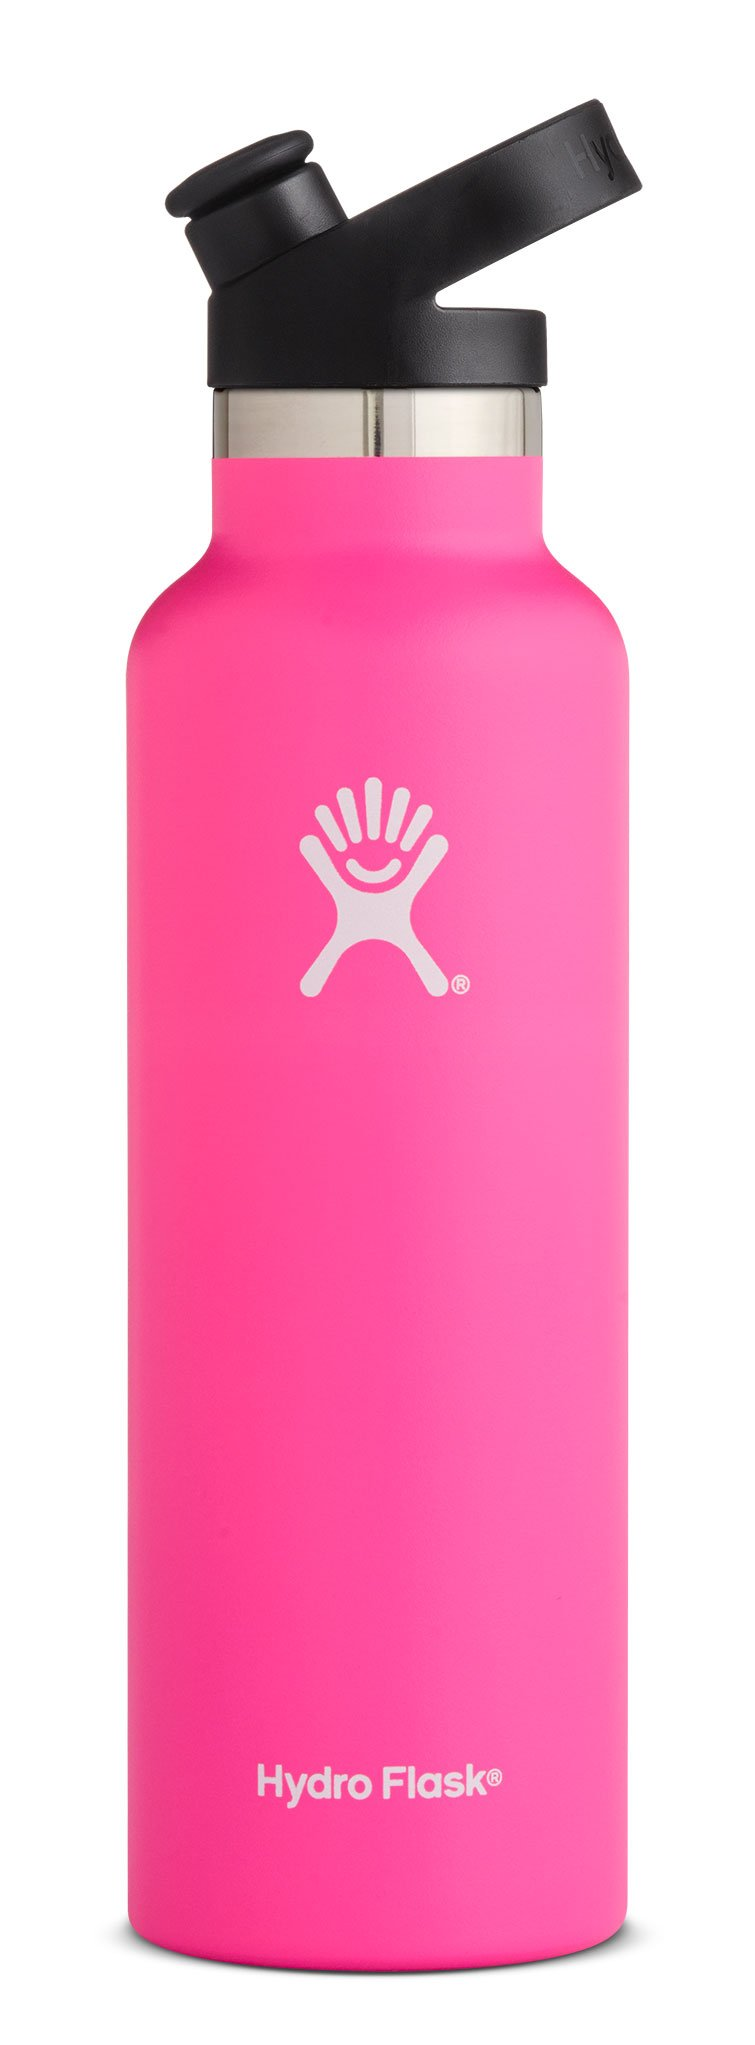 Hydro Flask 21 oz Double Wall Vacuum Insulated Stainless Steel Sports Water Bottle, Standard Mouth with BPA Free Sport Cap, Flamingo